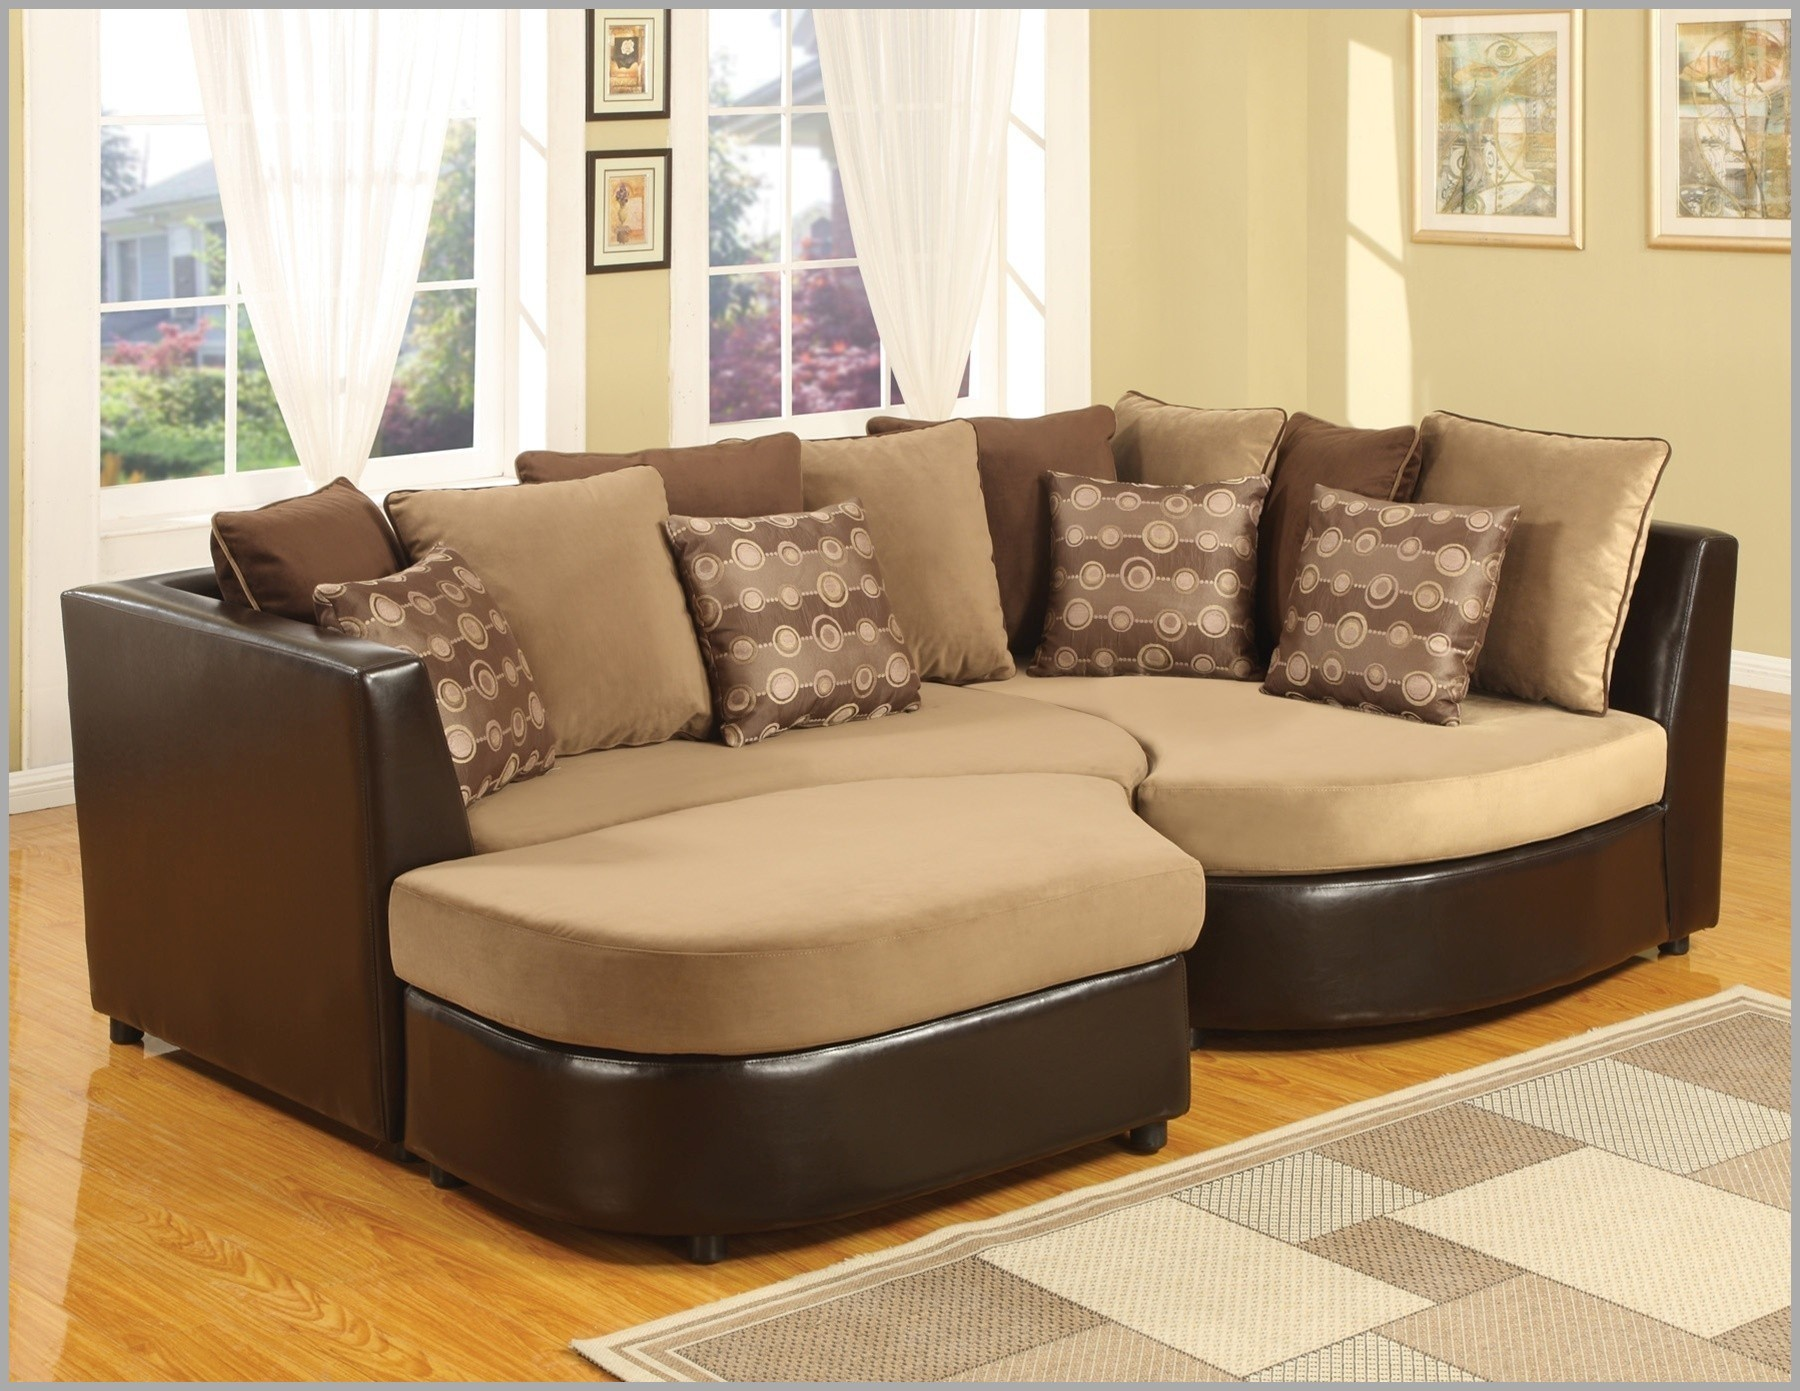 Sectional Pit sofa Finest Sectional Pit sofa Cameron Sectional Puzzle sofa Picture